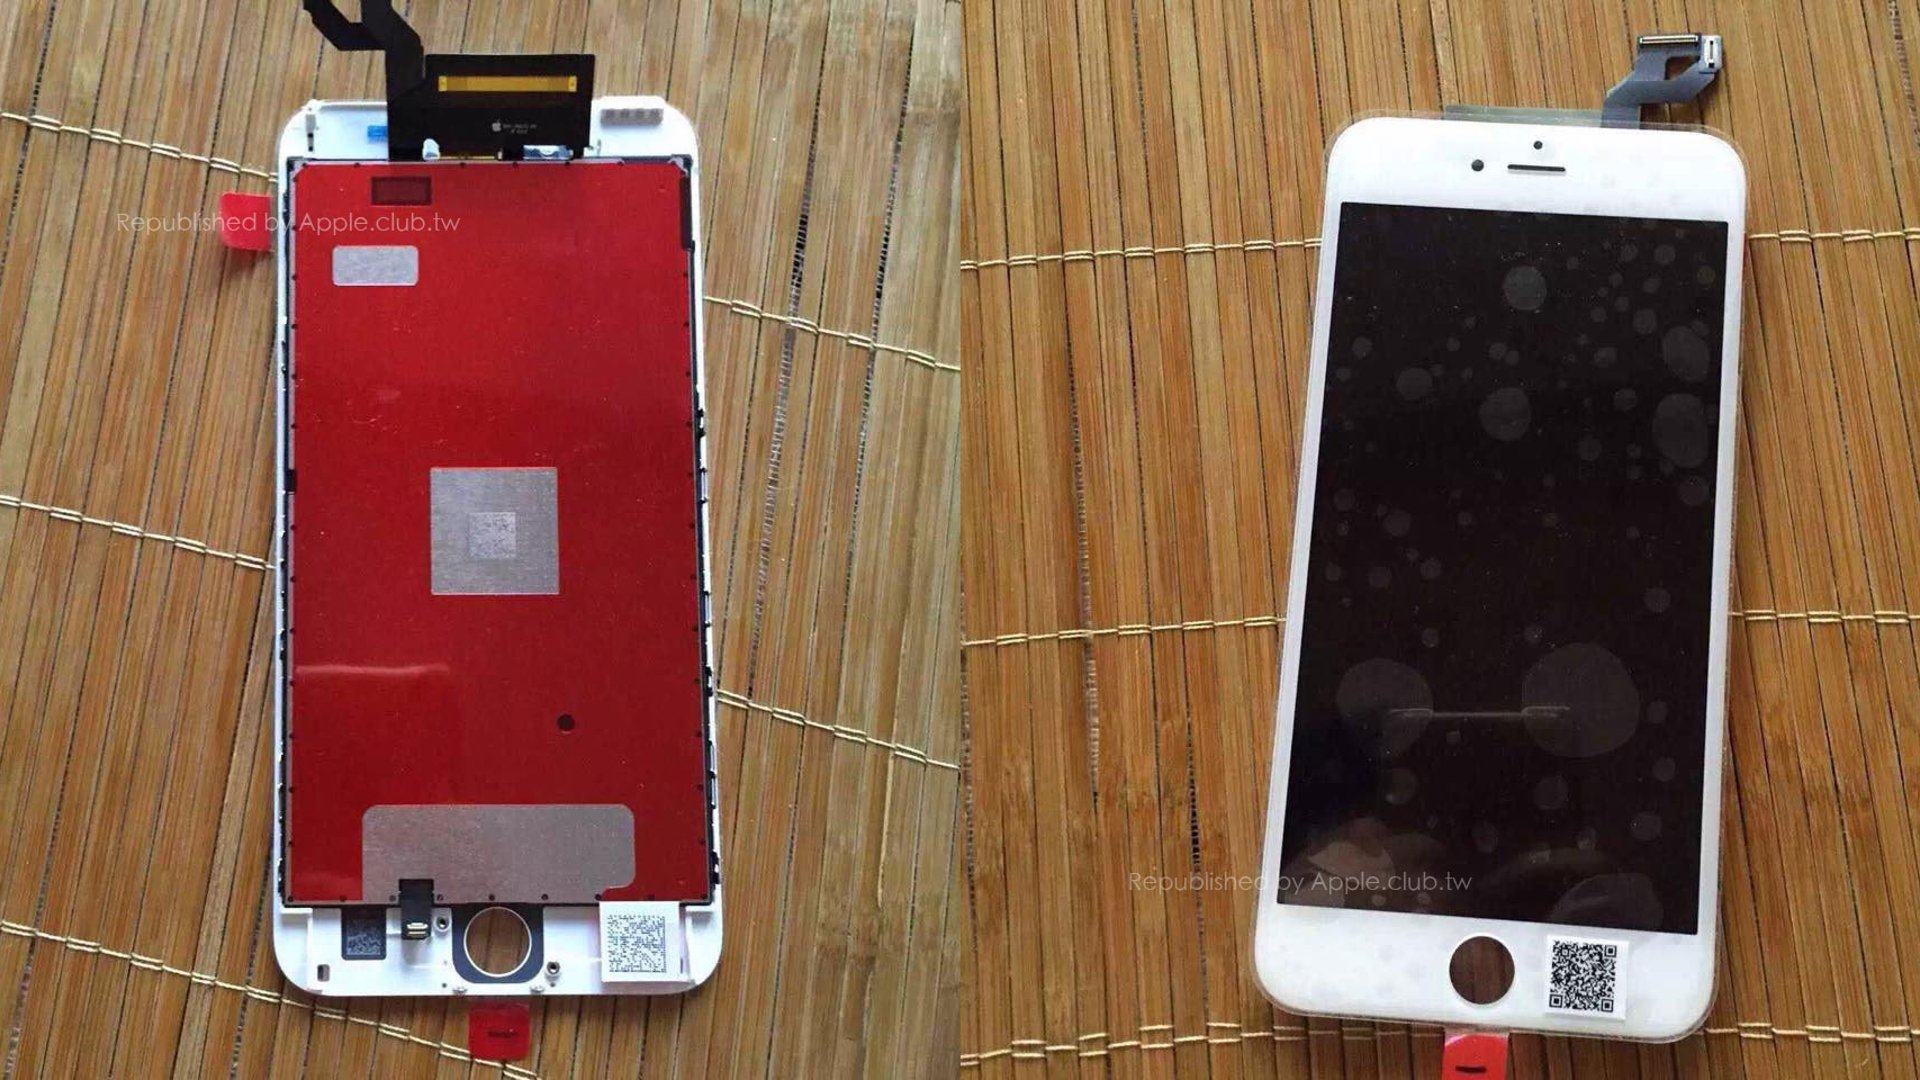 iPhone 6S Plus - Leaked Images Showing Force Touch Hardware